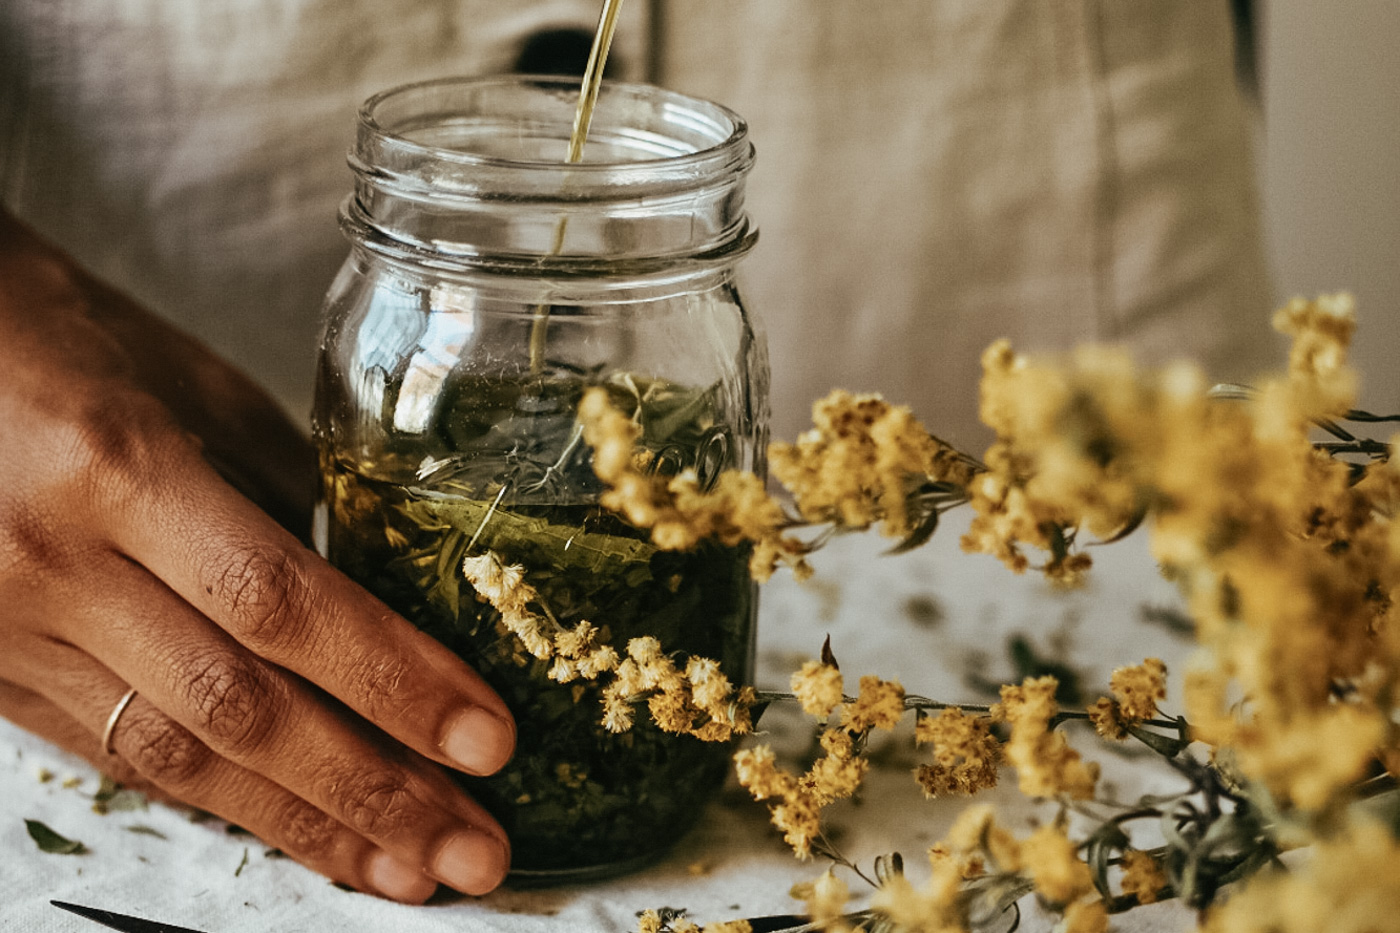 The Making Herbal Preparations Course by Herbal Academy –Making Herbal Oils and Salves